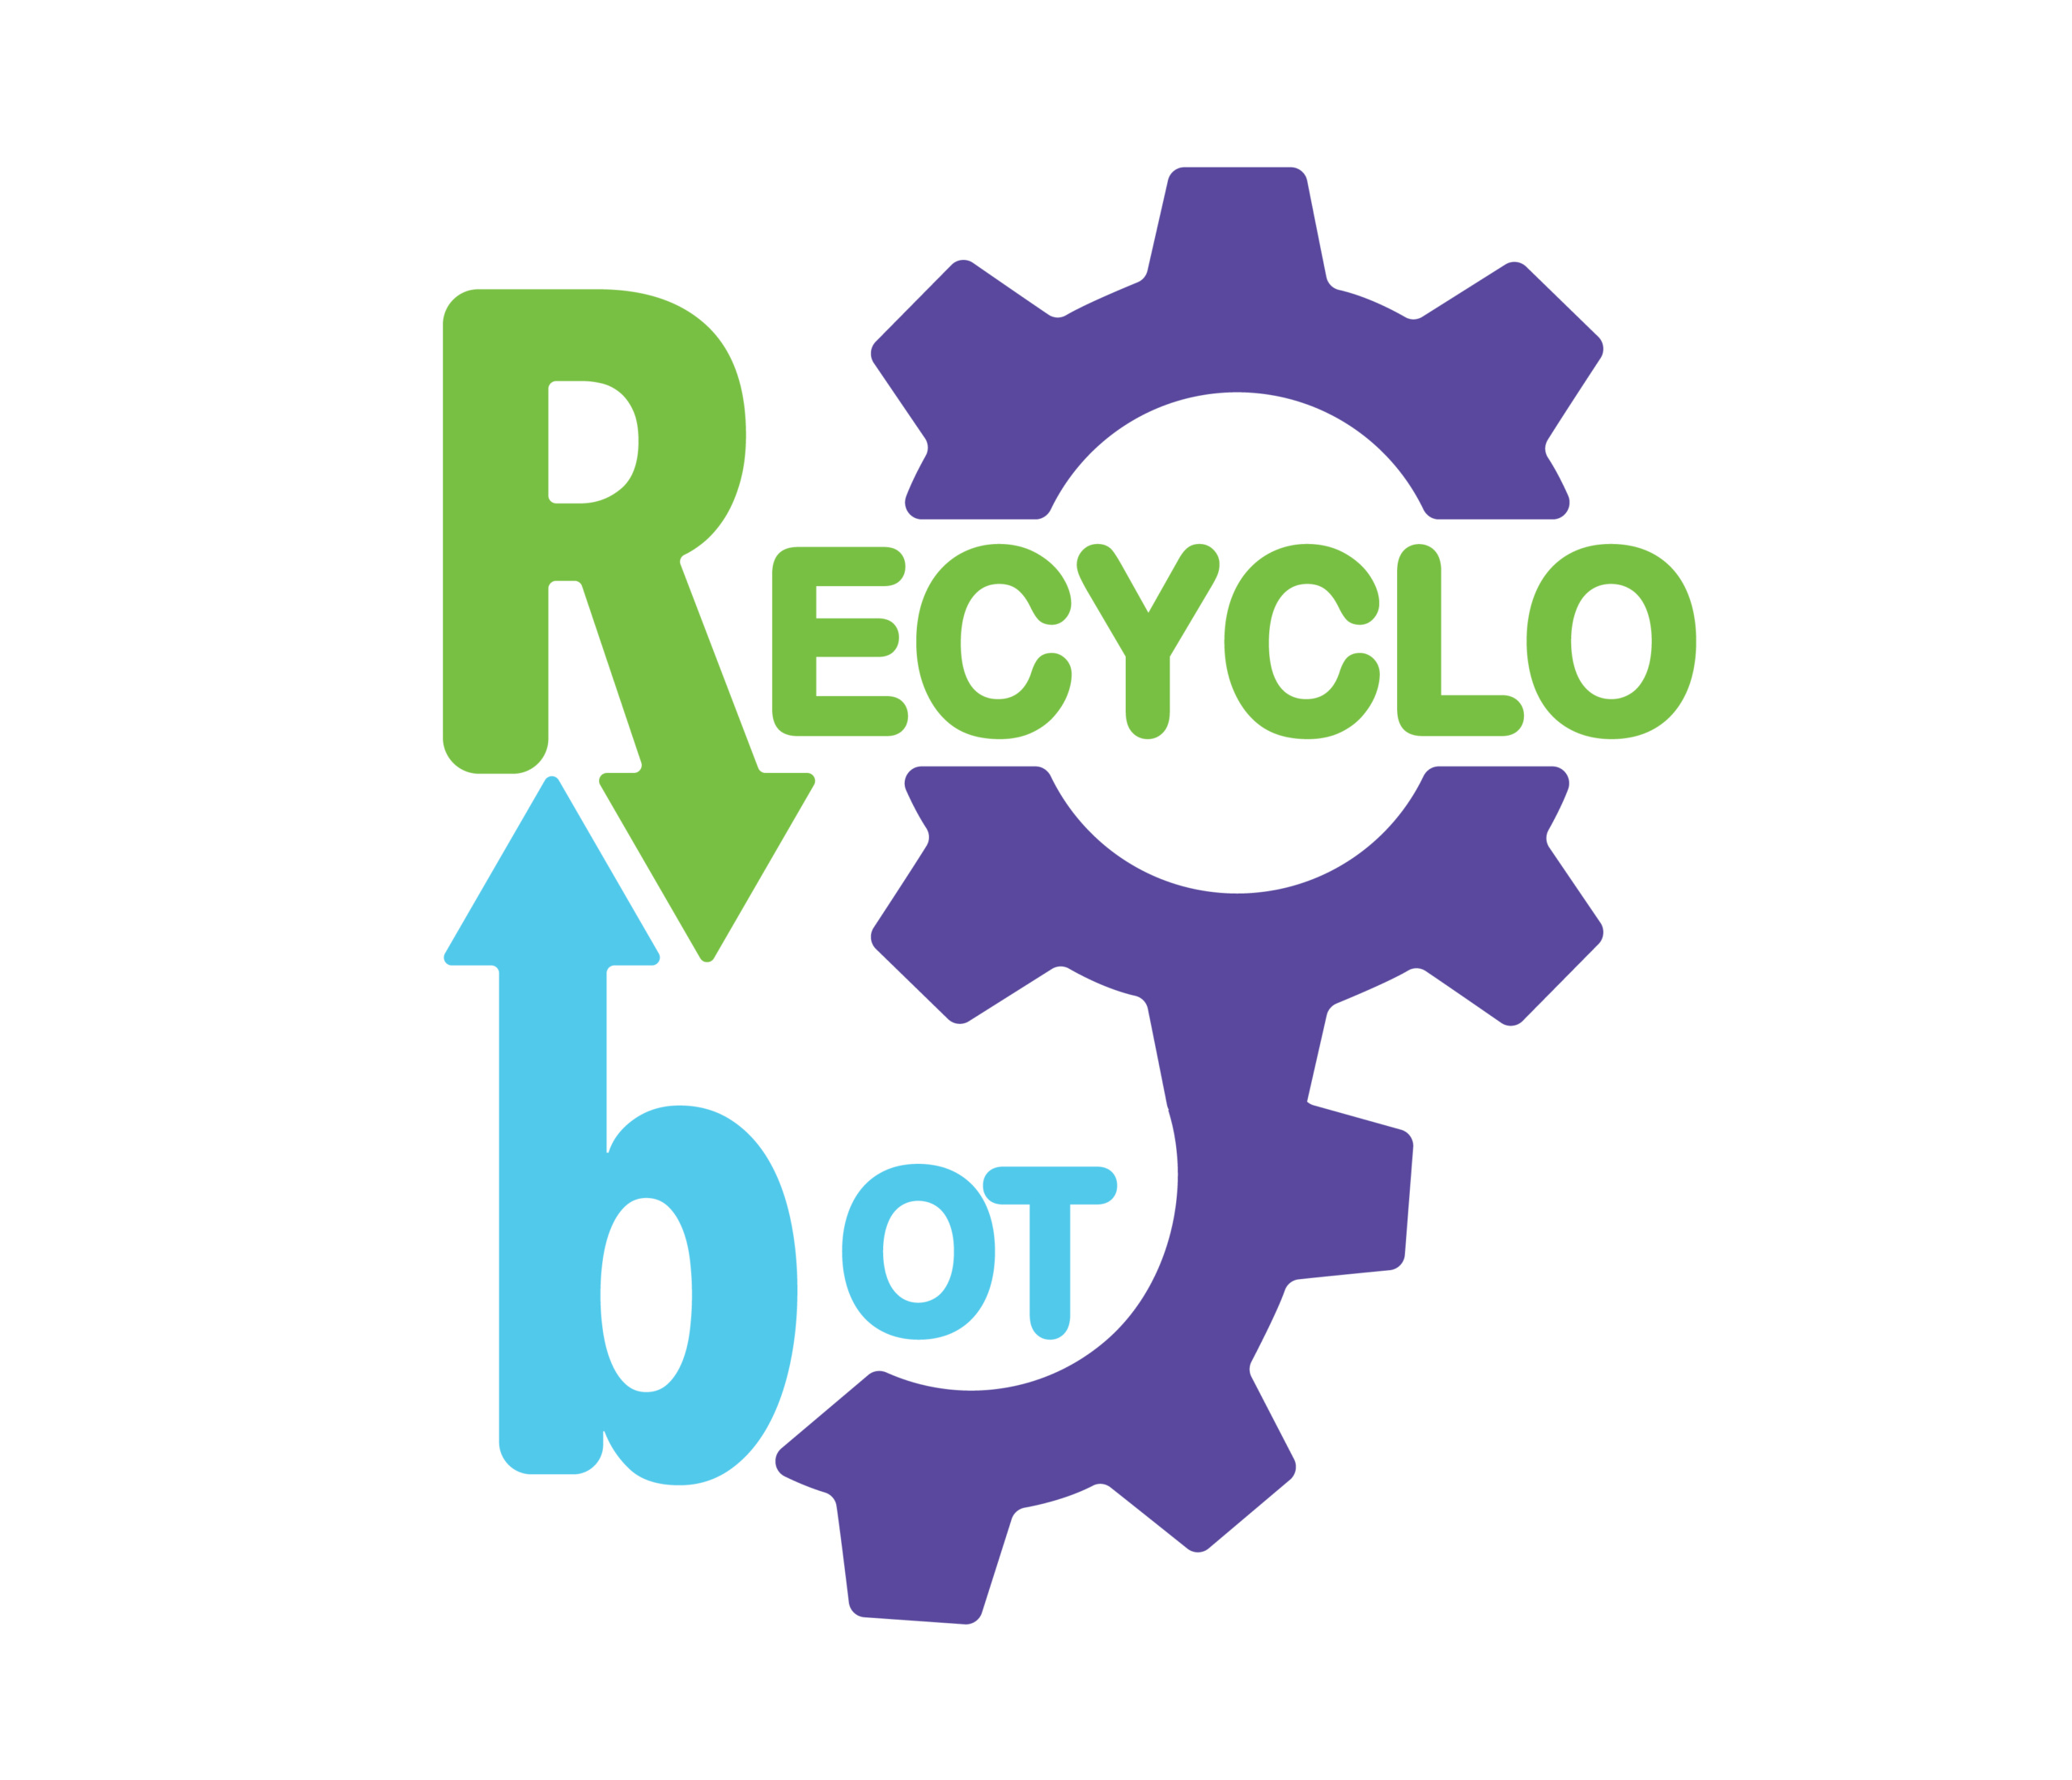 Branding: Recyclobot with Instructional